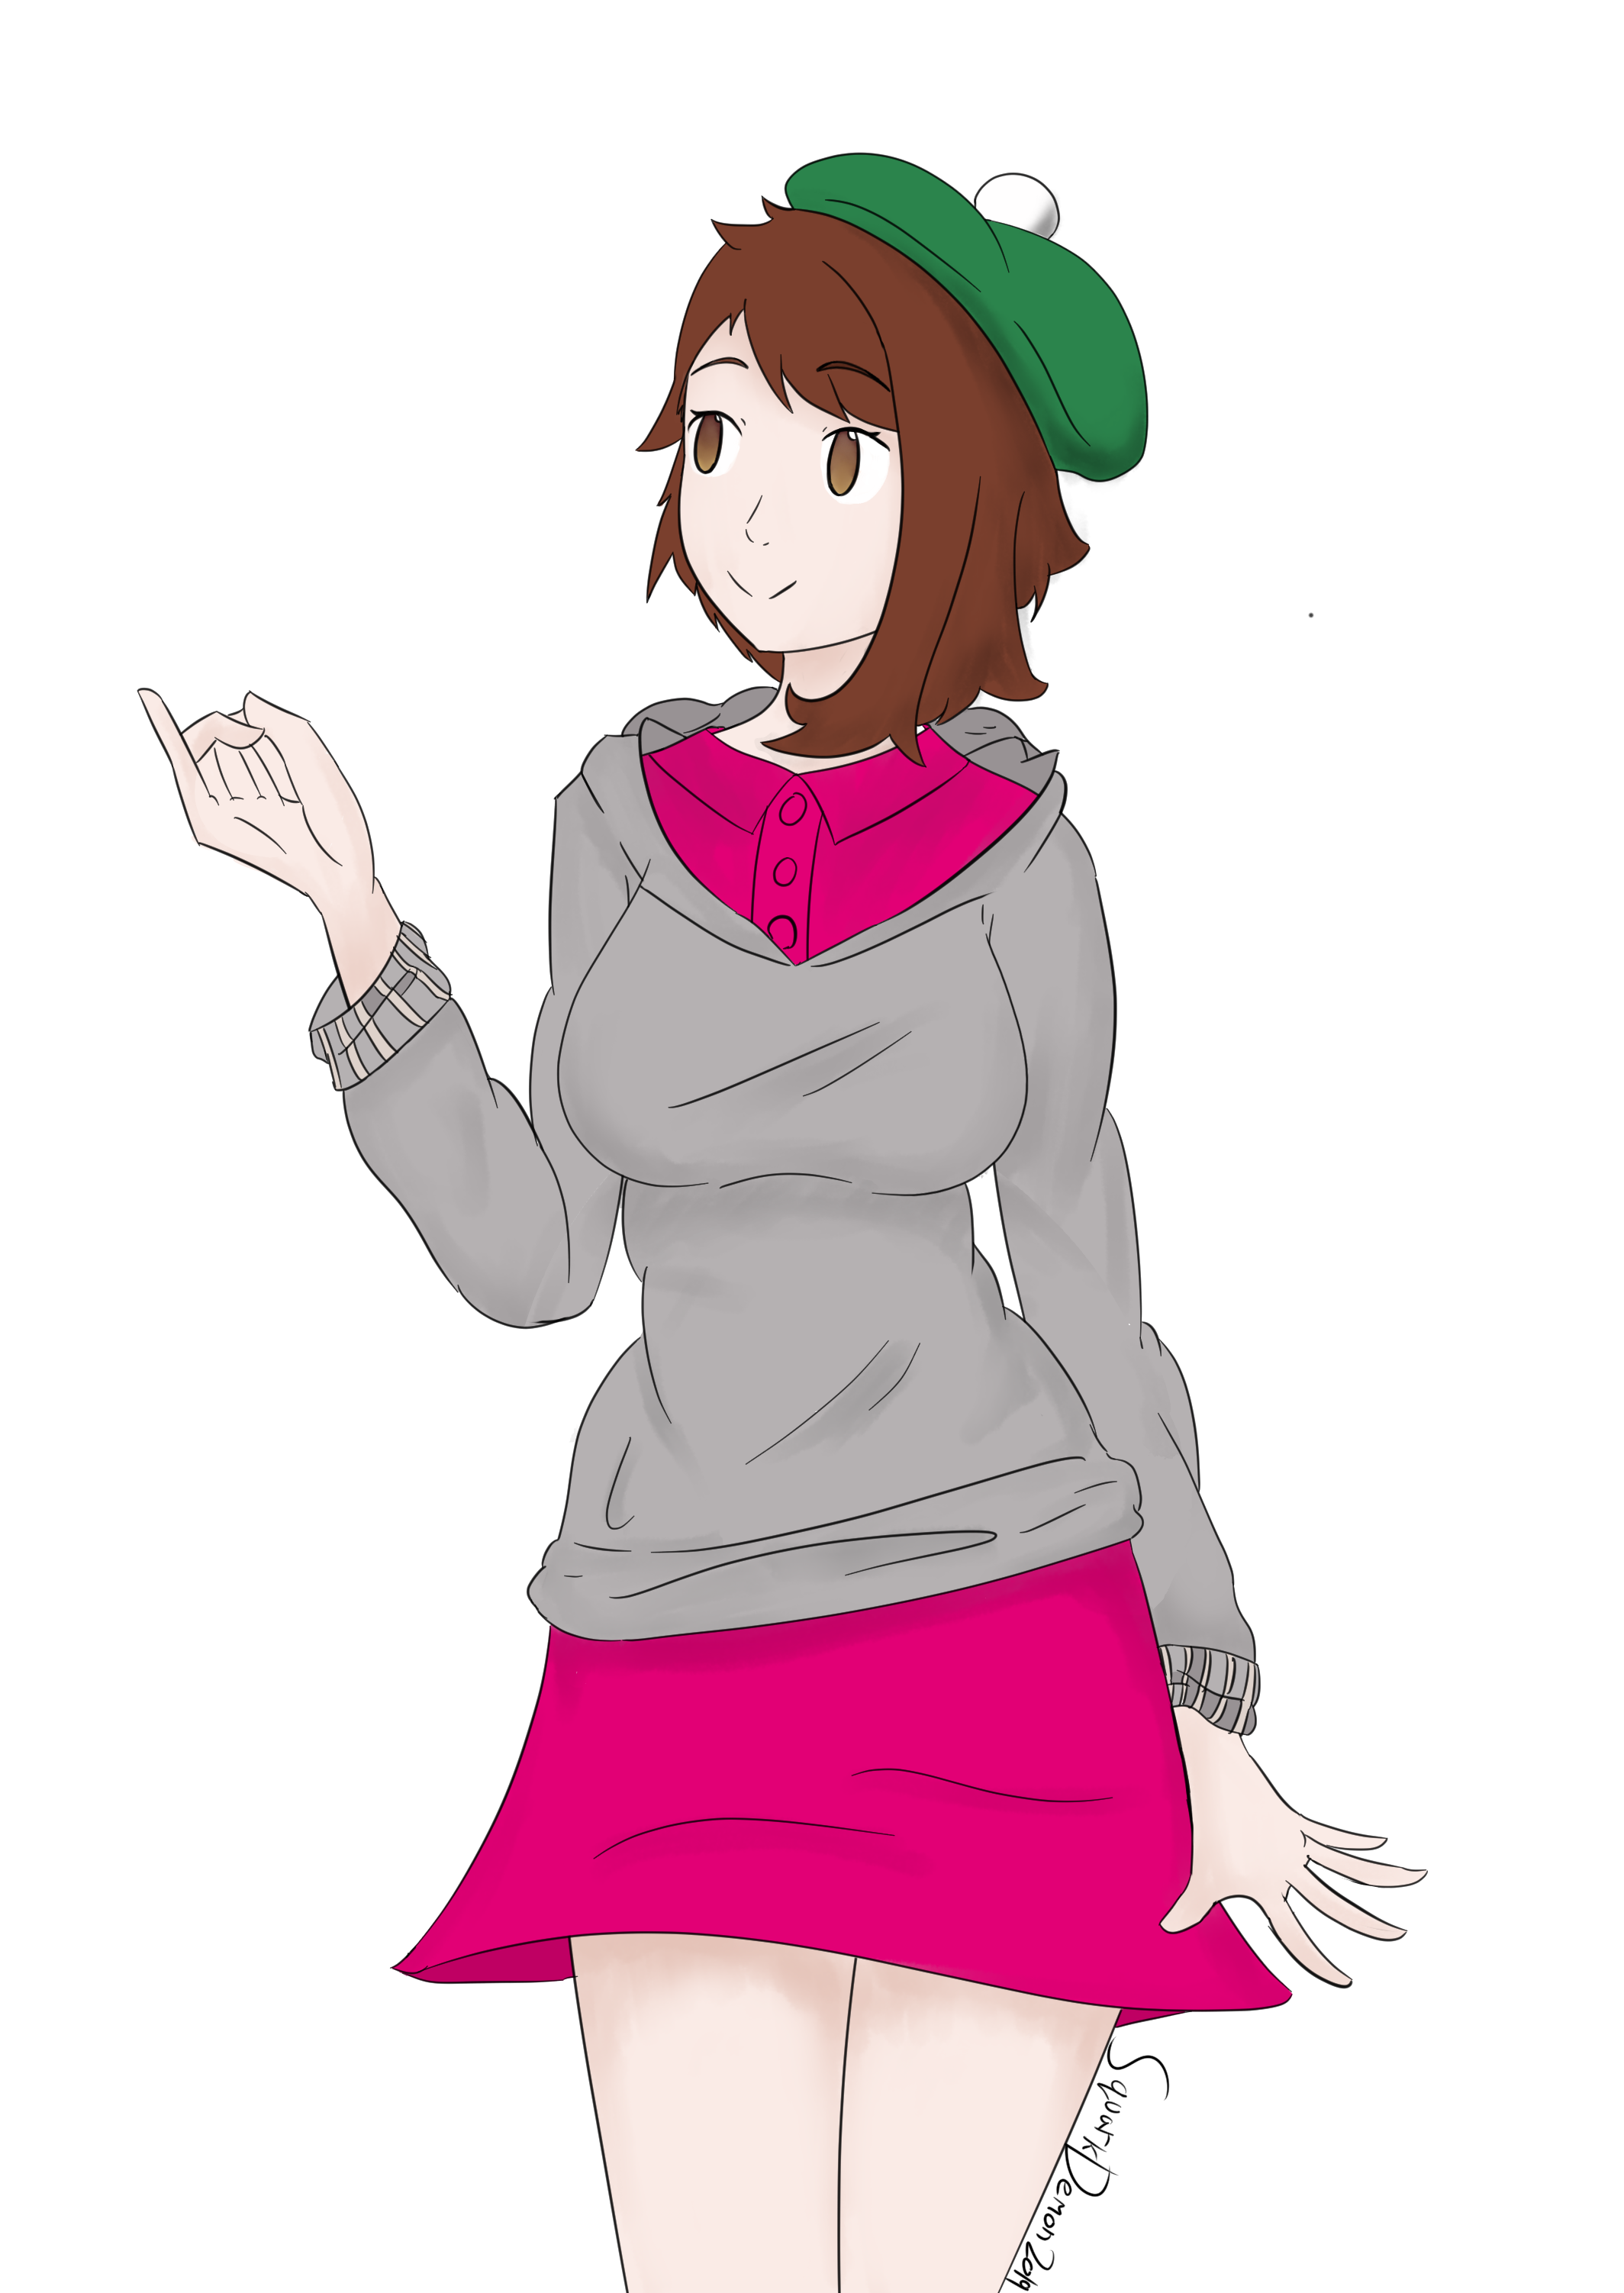 Female Trainer Pokemon Sword And Shield By Sqwarkdemon On Newgrounds